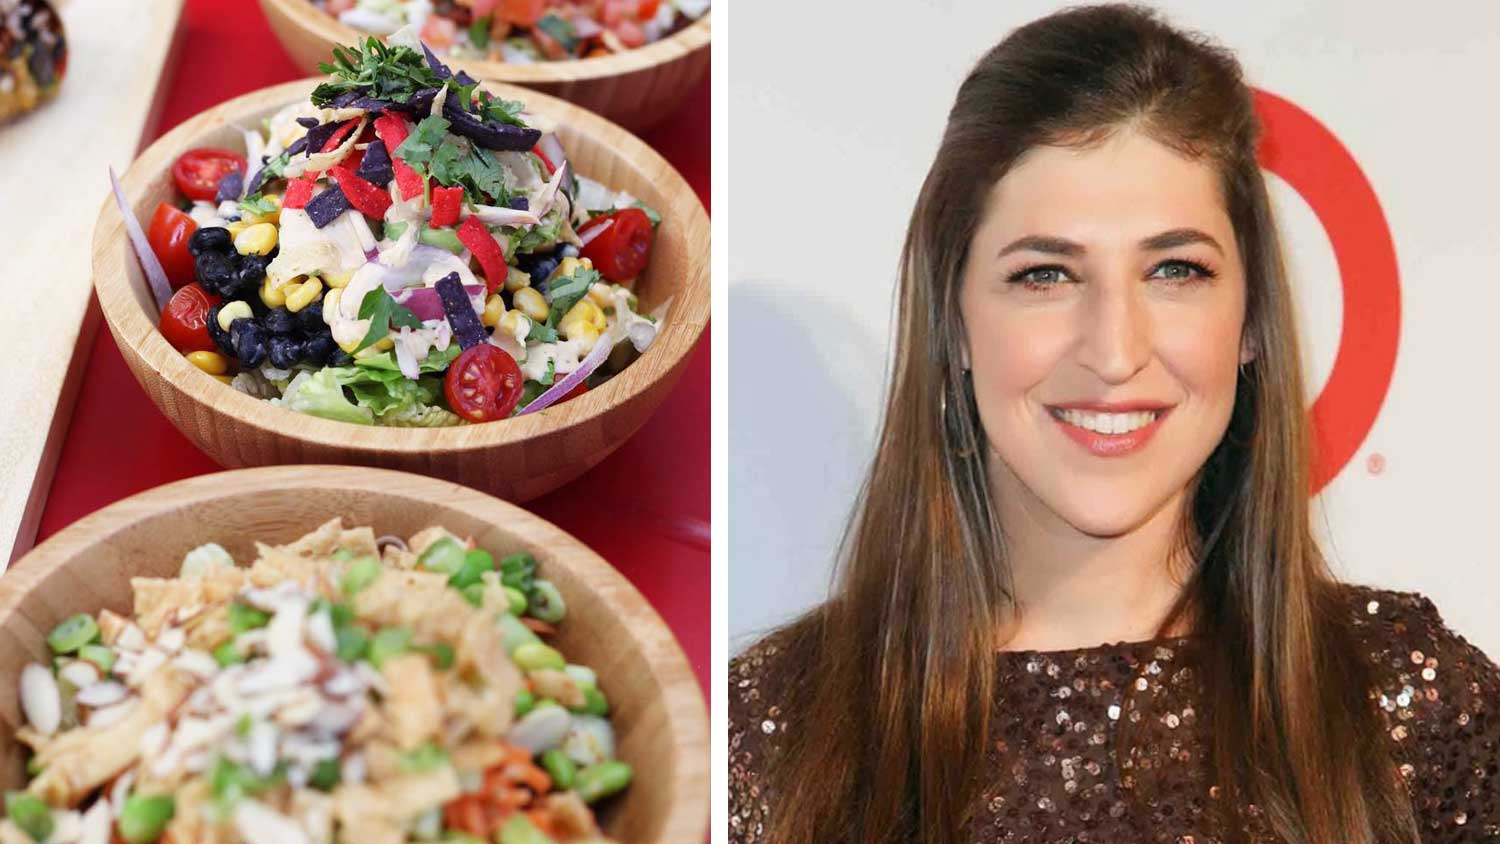 'Big Bang Theory' Star Mayim Bialik Is Now a Vegan Restaurant Owner